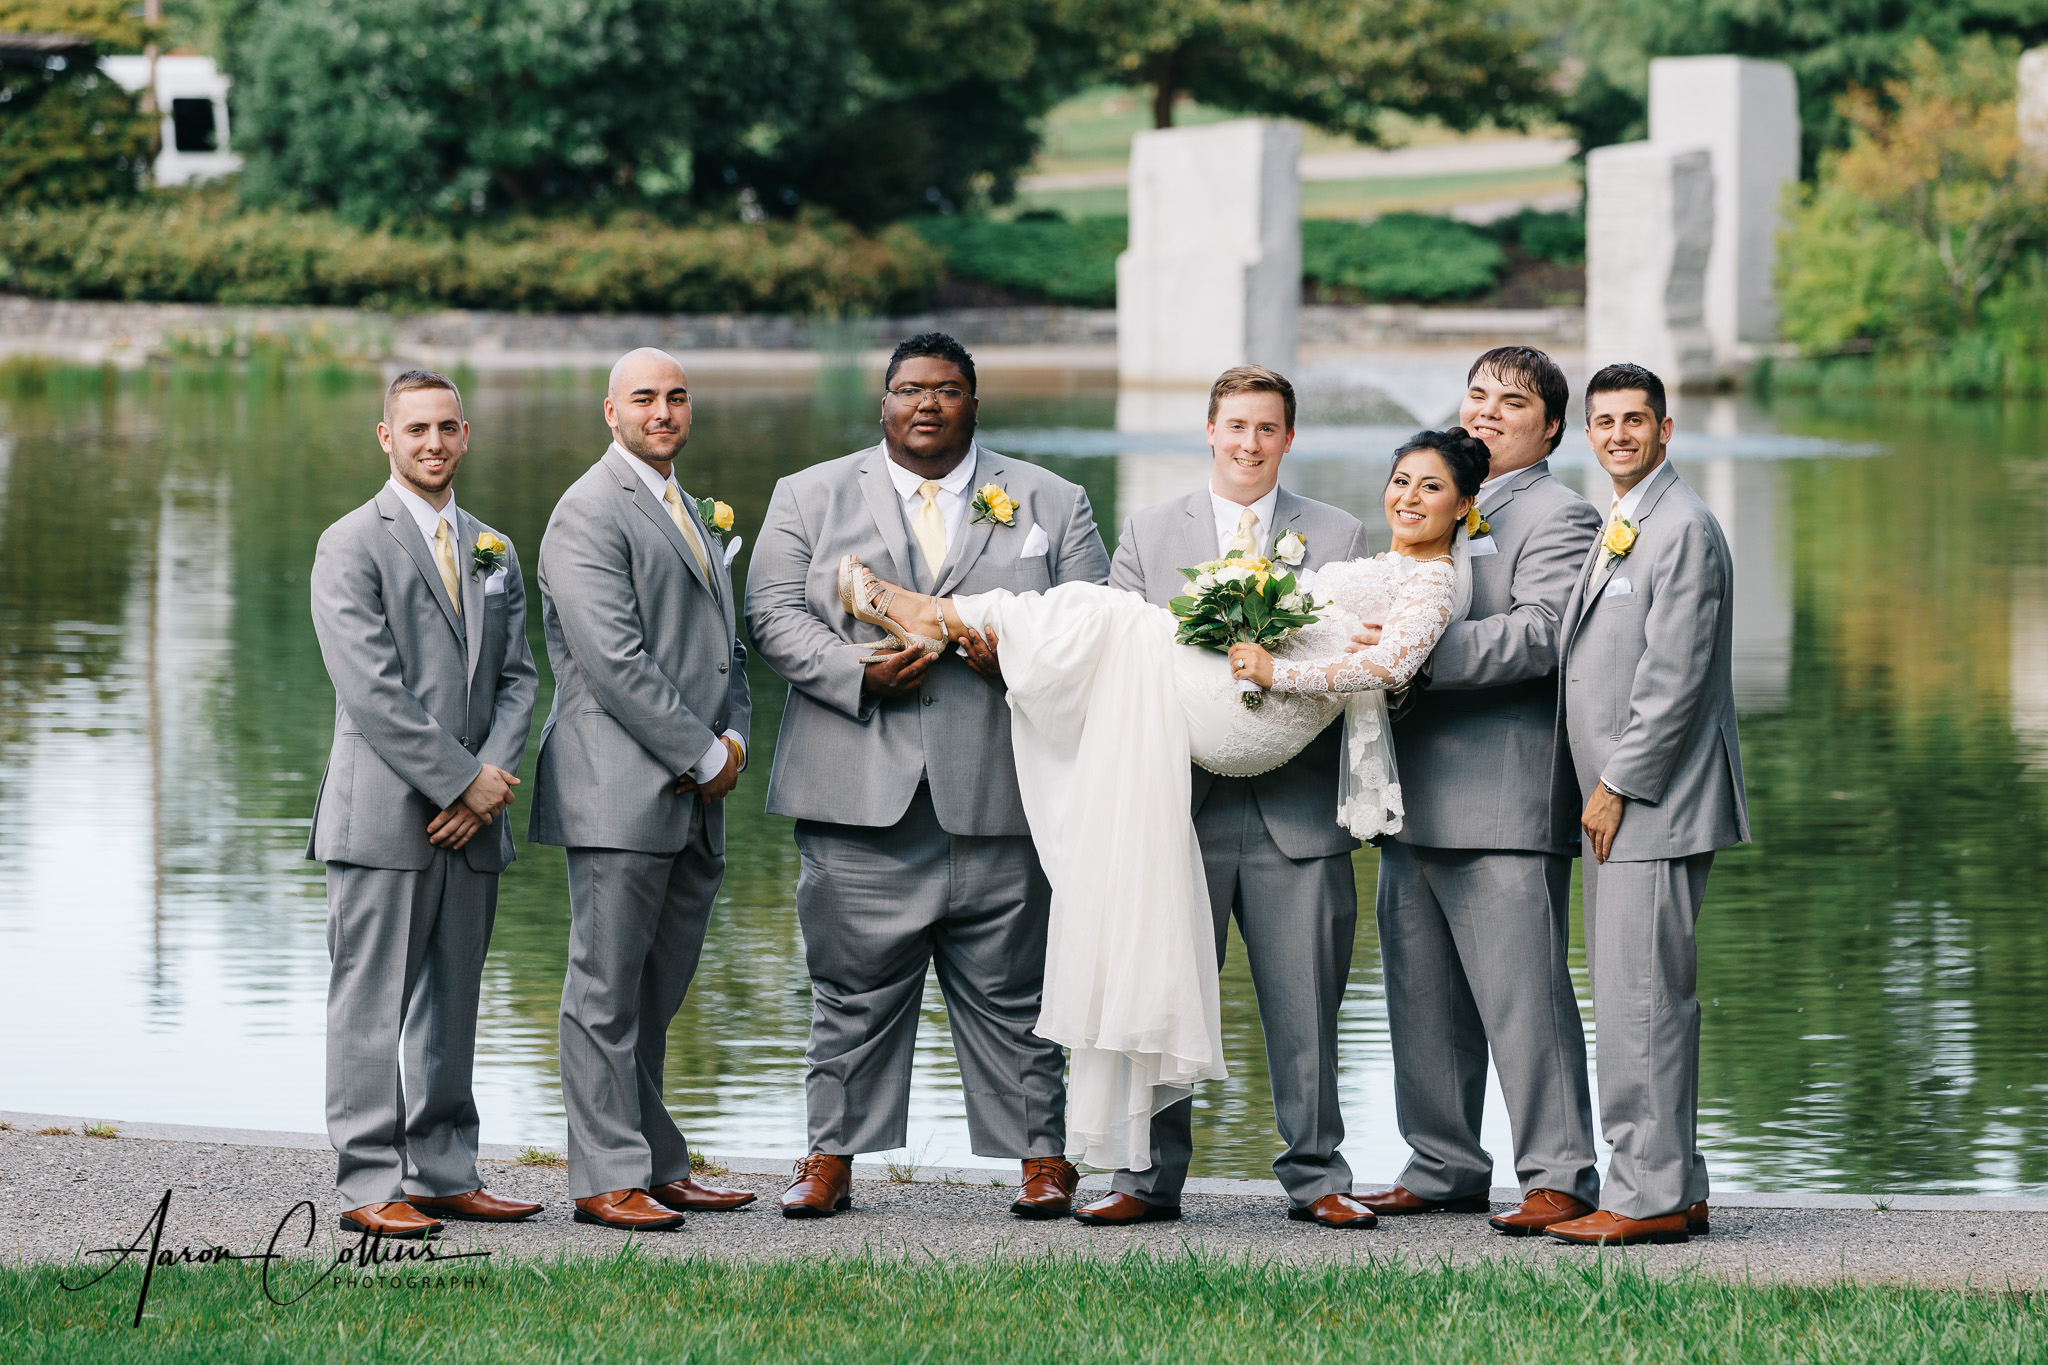 Groomsmen and bride wedding portrait at Green Hill Park in Worcester